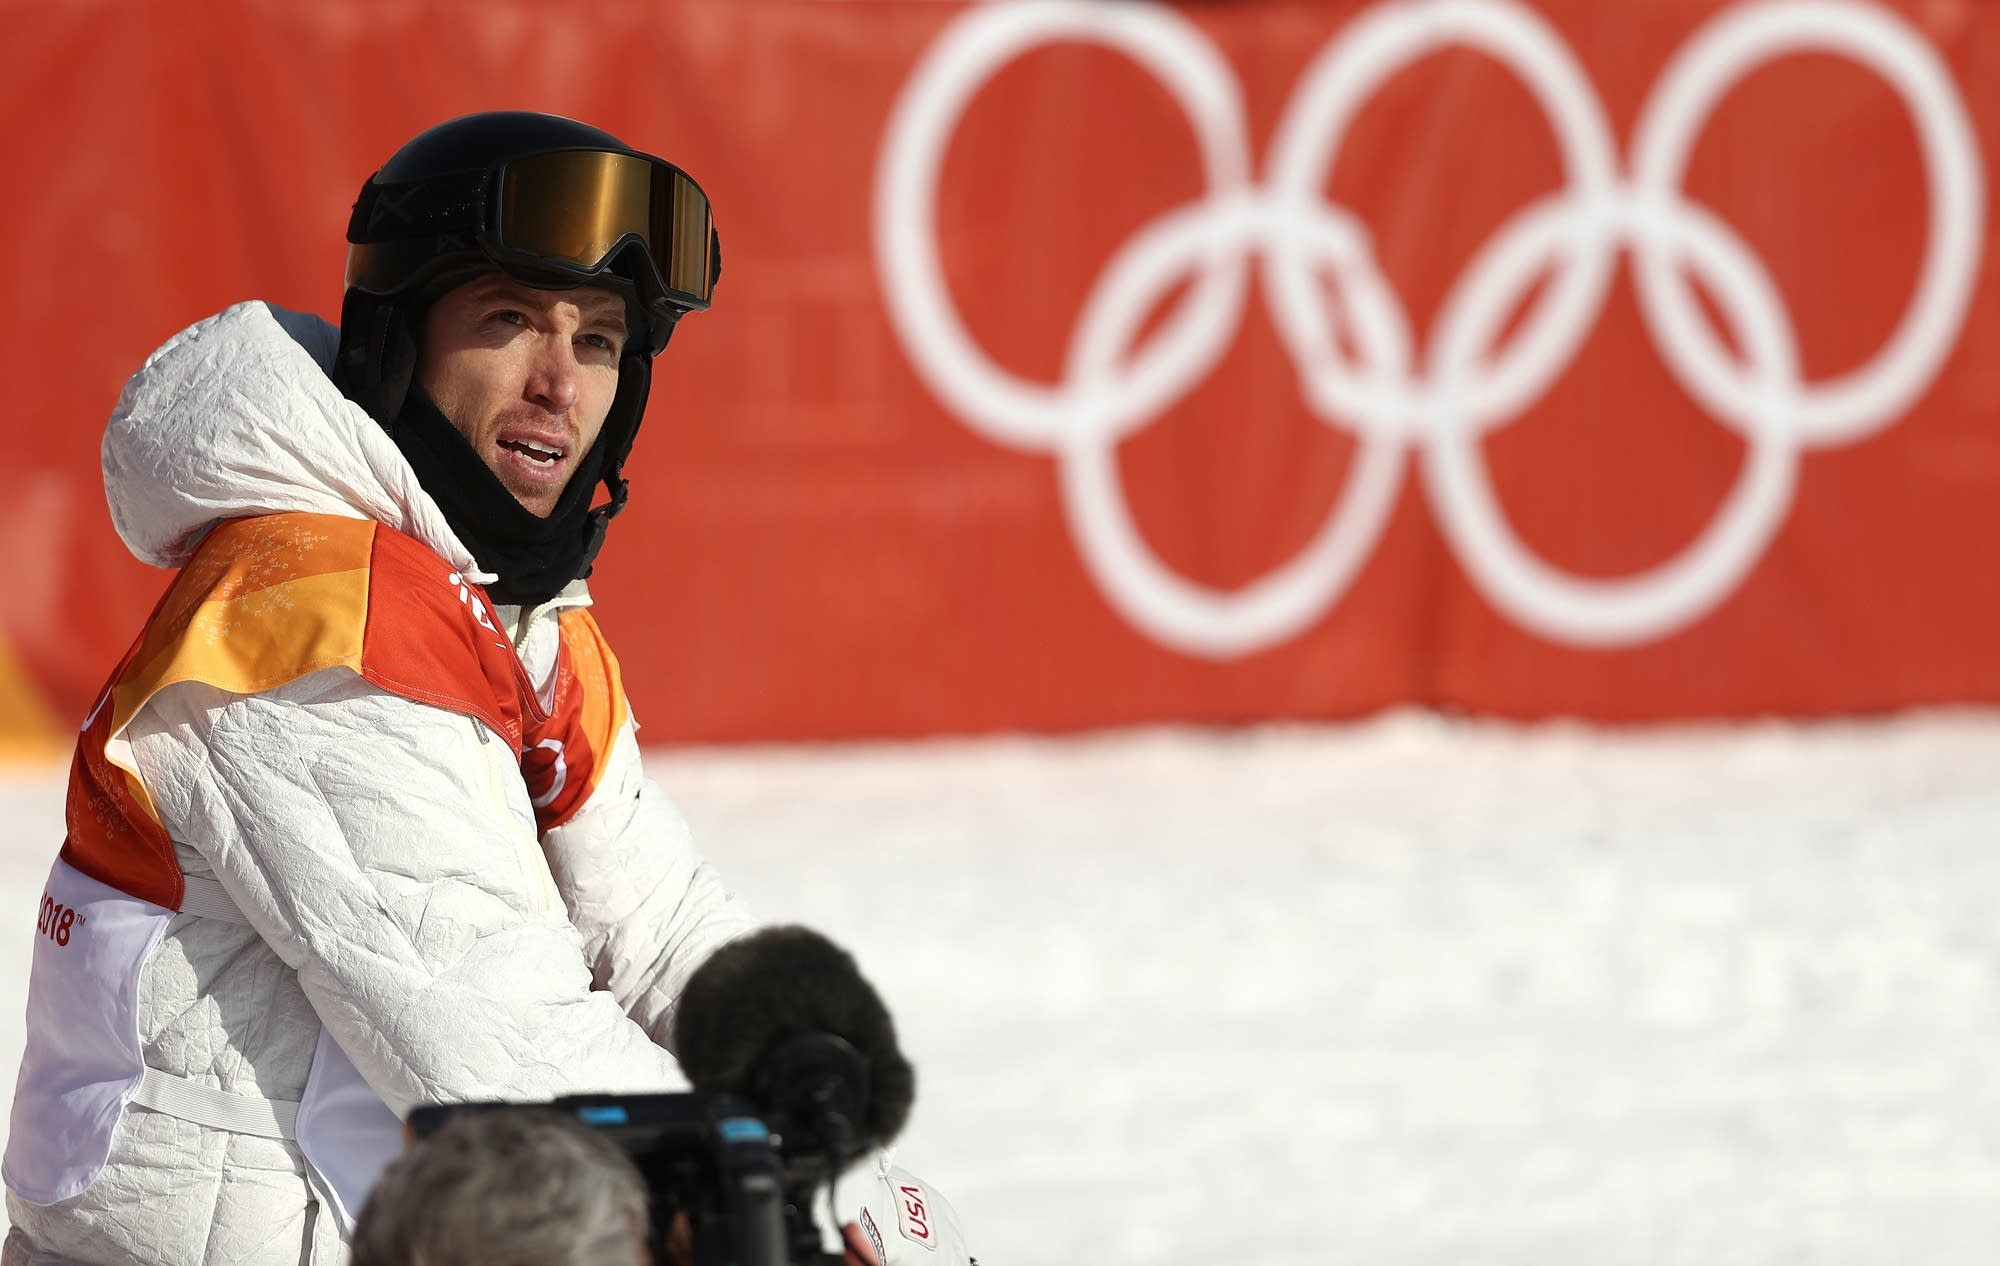 Olympic snowboard champion White says proud to change sport